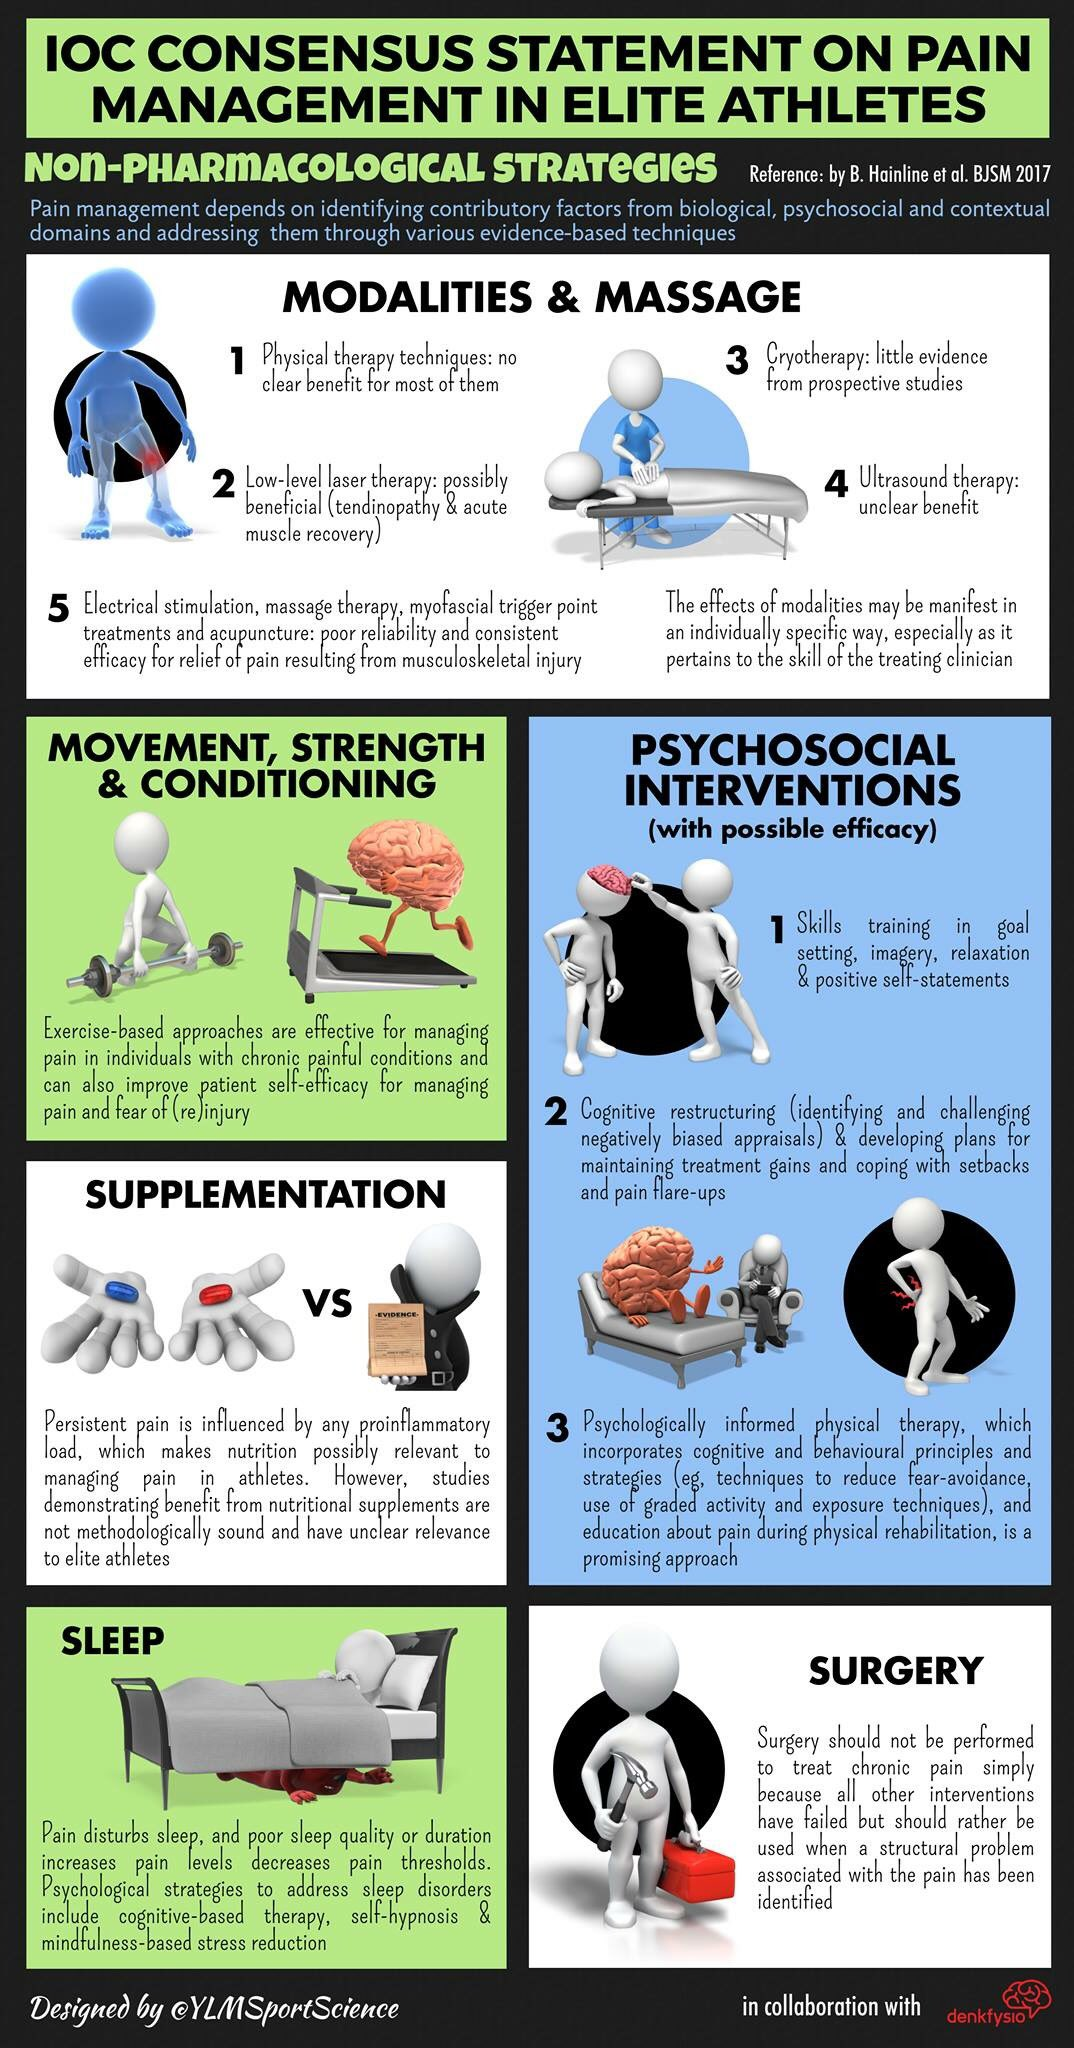 Our latest infographic!😄thanks again @YLMSportScience  IOC Consensus statement on #pain 😬management  ✔️Modalities & massages 👍👎 ✔️Movement, strength & conditioning 👍👍 ✔️Supplementation 👍👎 ✔️Psychosocial interventions 👍👍 ✔️Sleep 👍 ✔️Surgery 👎👎👎 https://t.co/A0m1FuZMMA